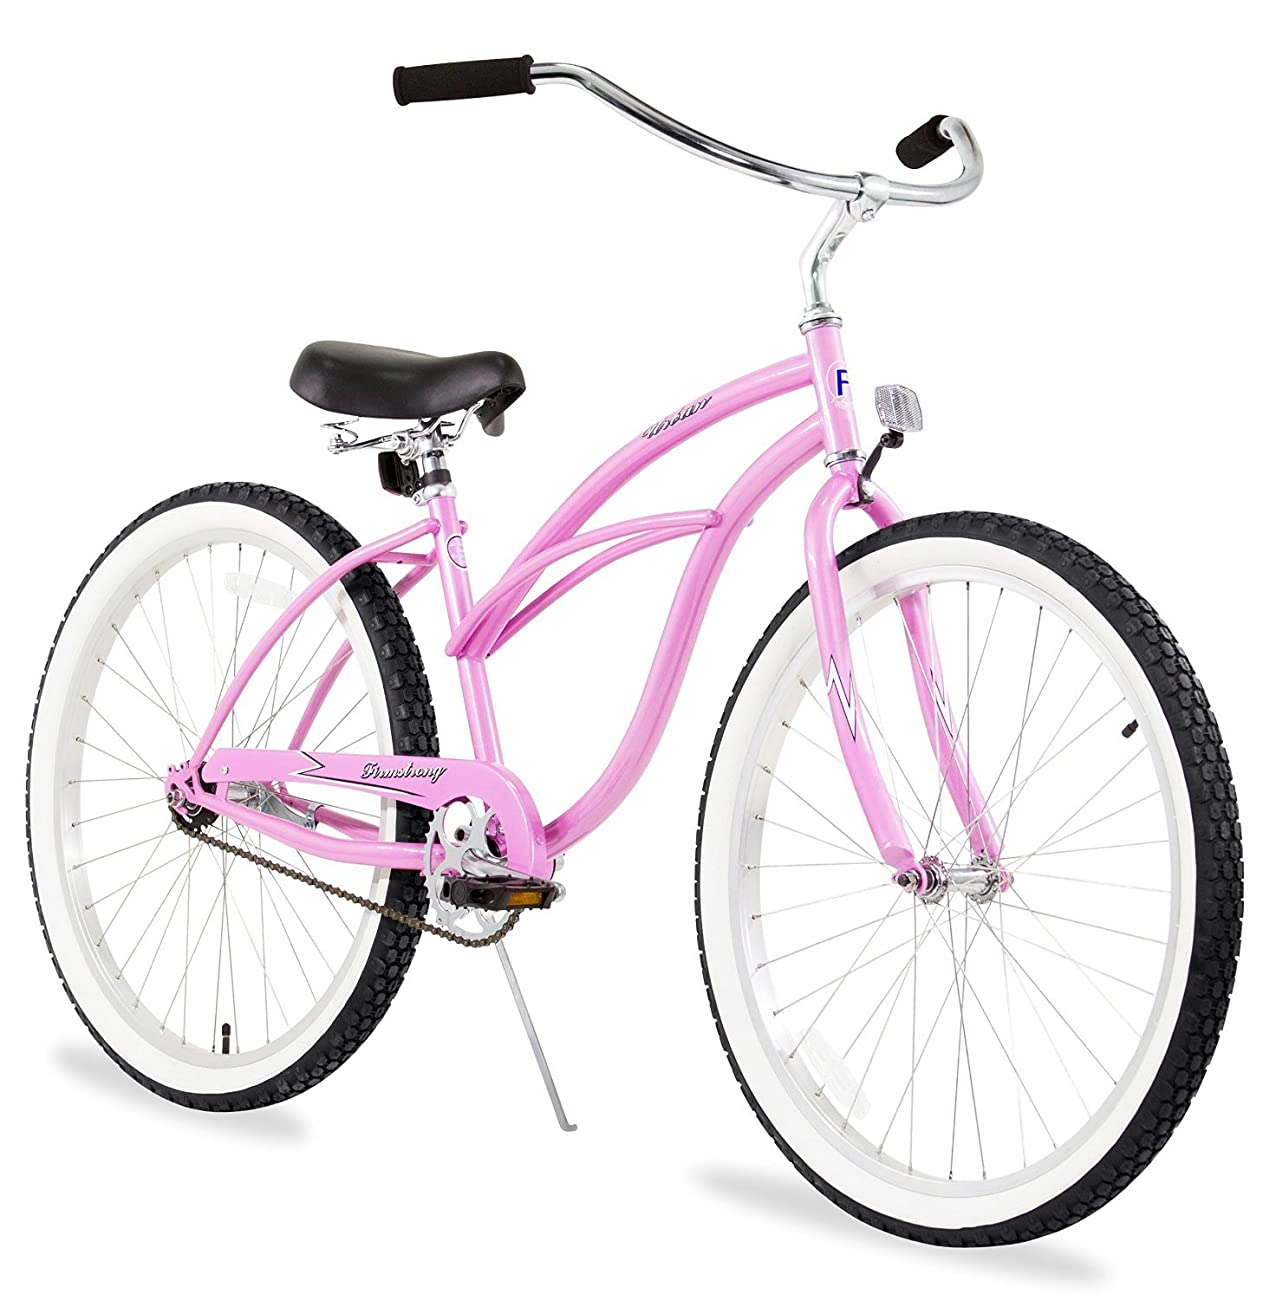 Firmstrong Urban Lady Beach Cruiser Bicycle 0